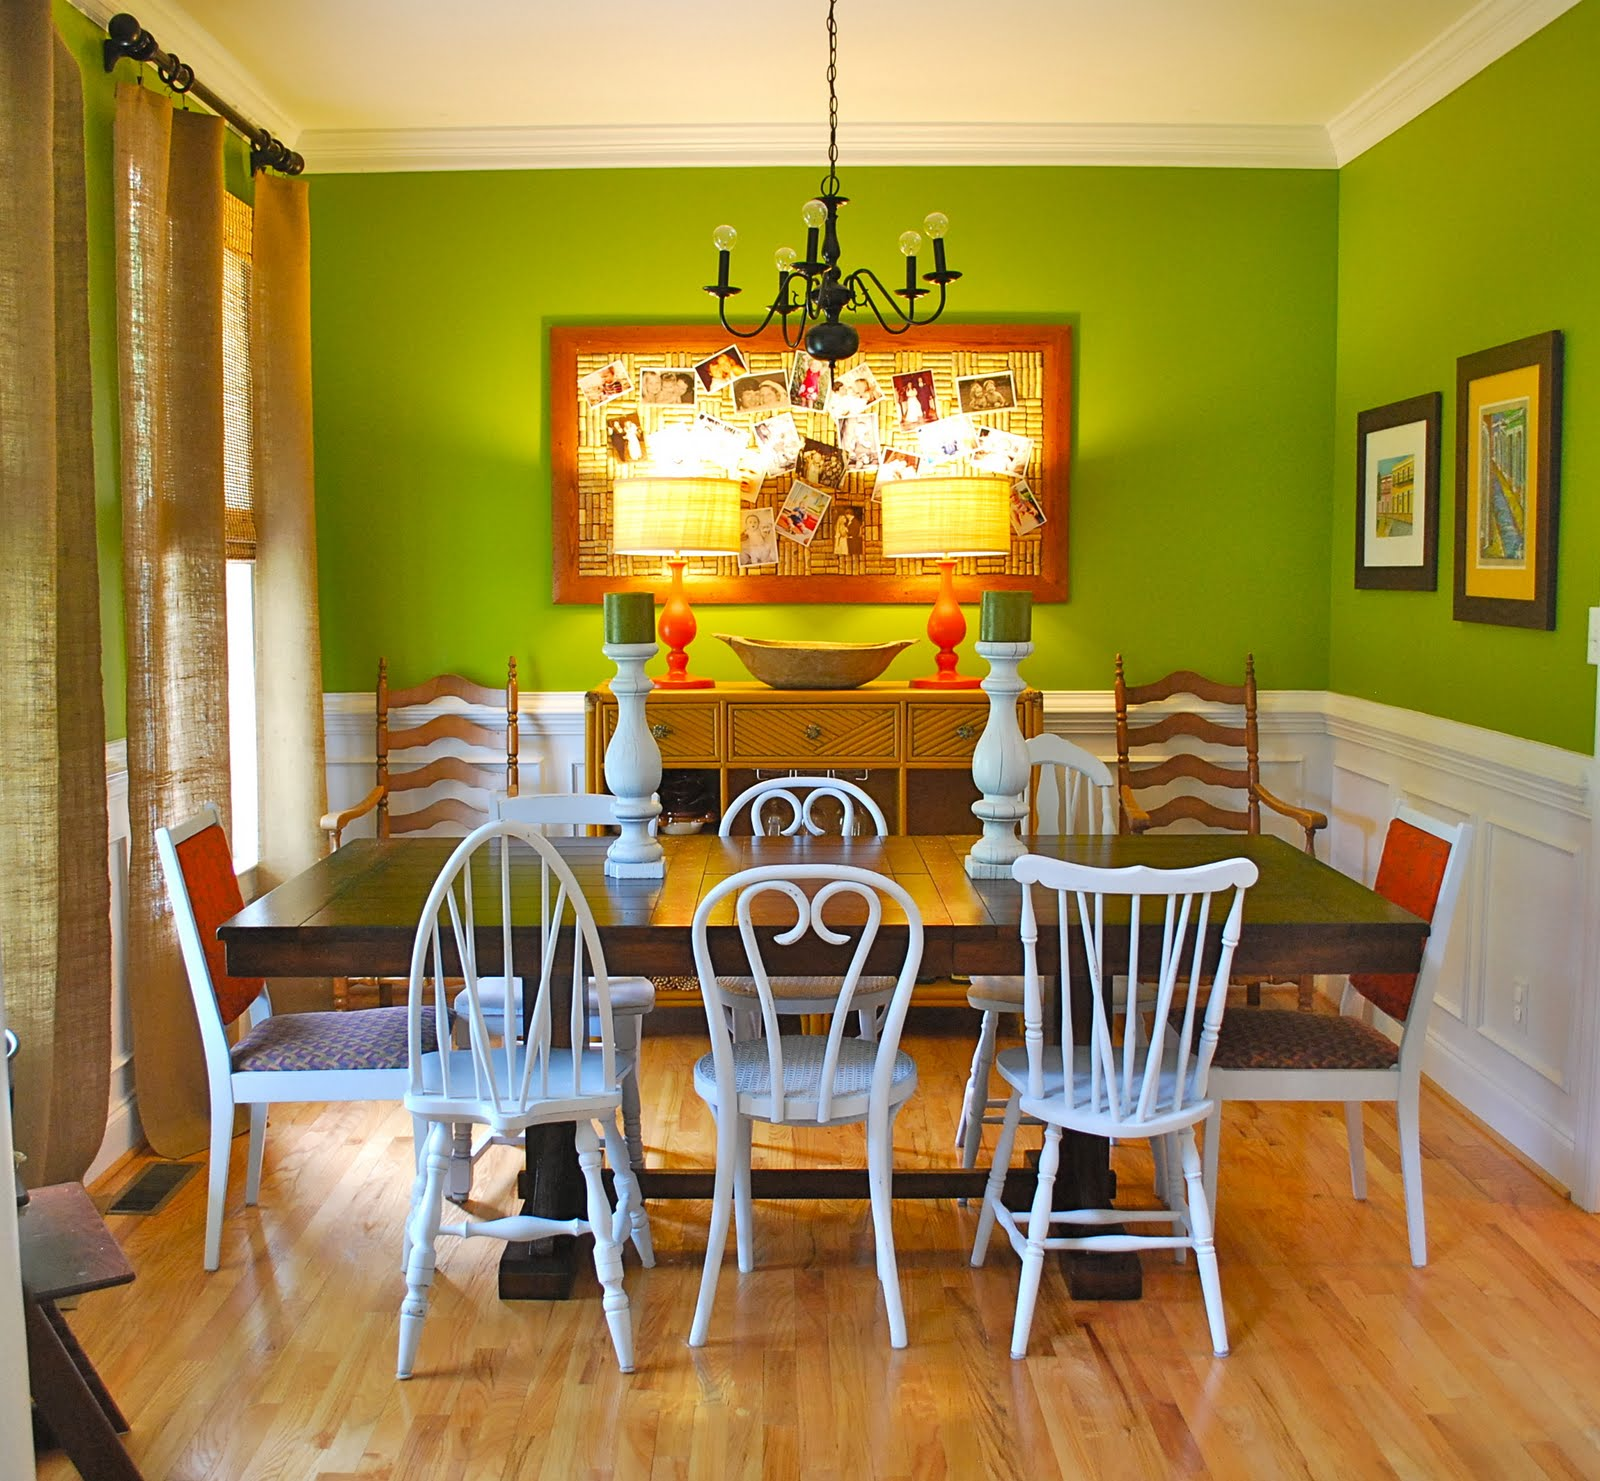 Best dining room sets for your home 21